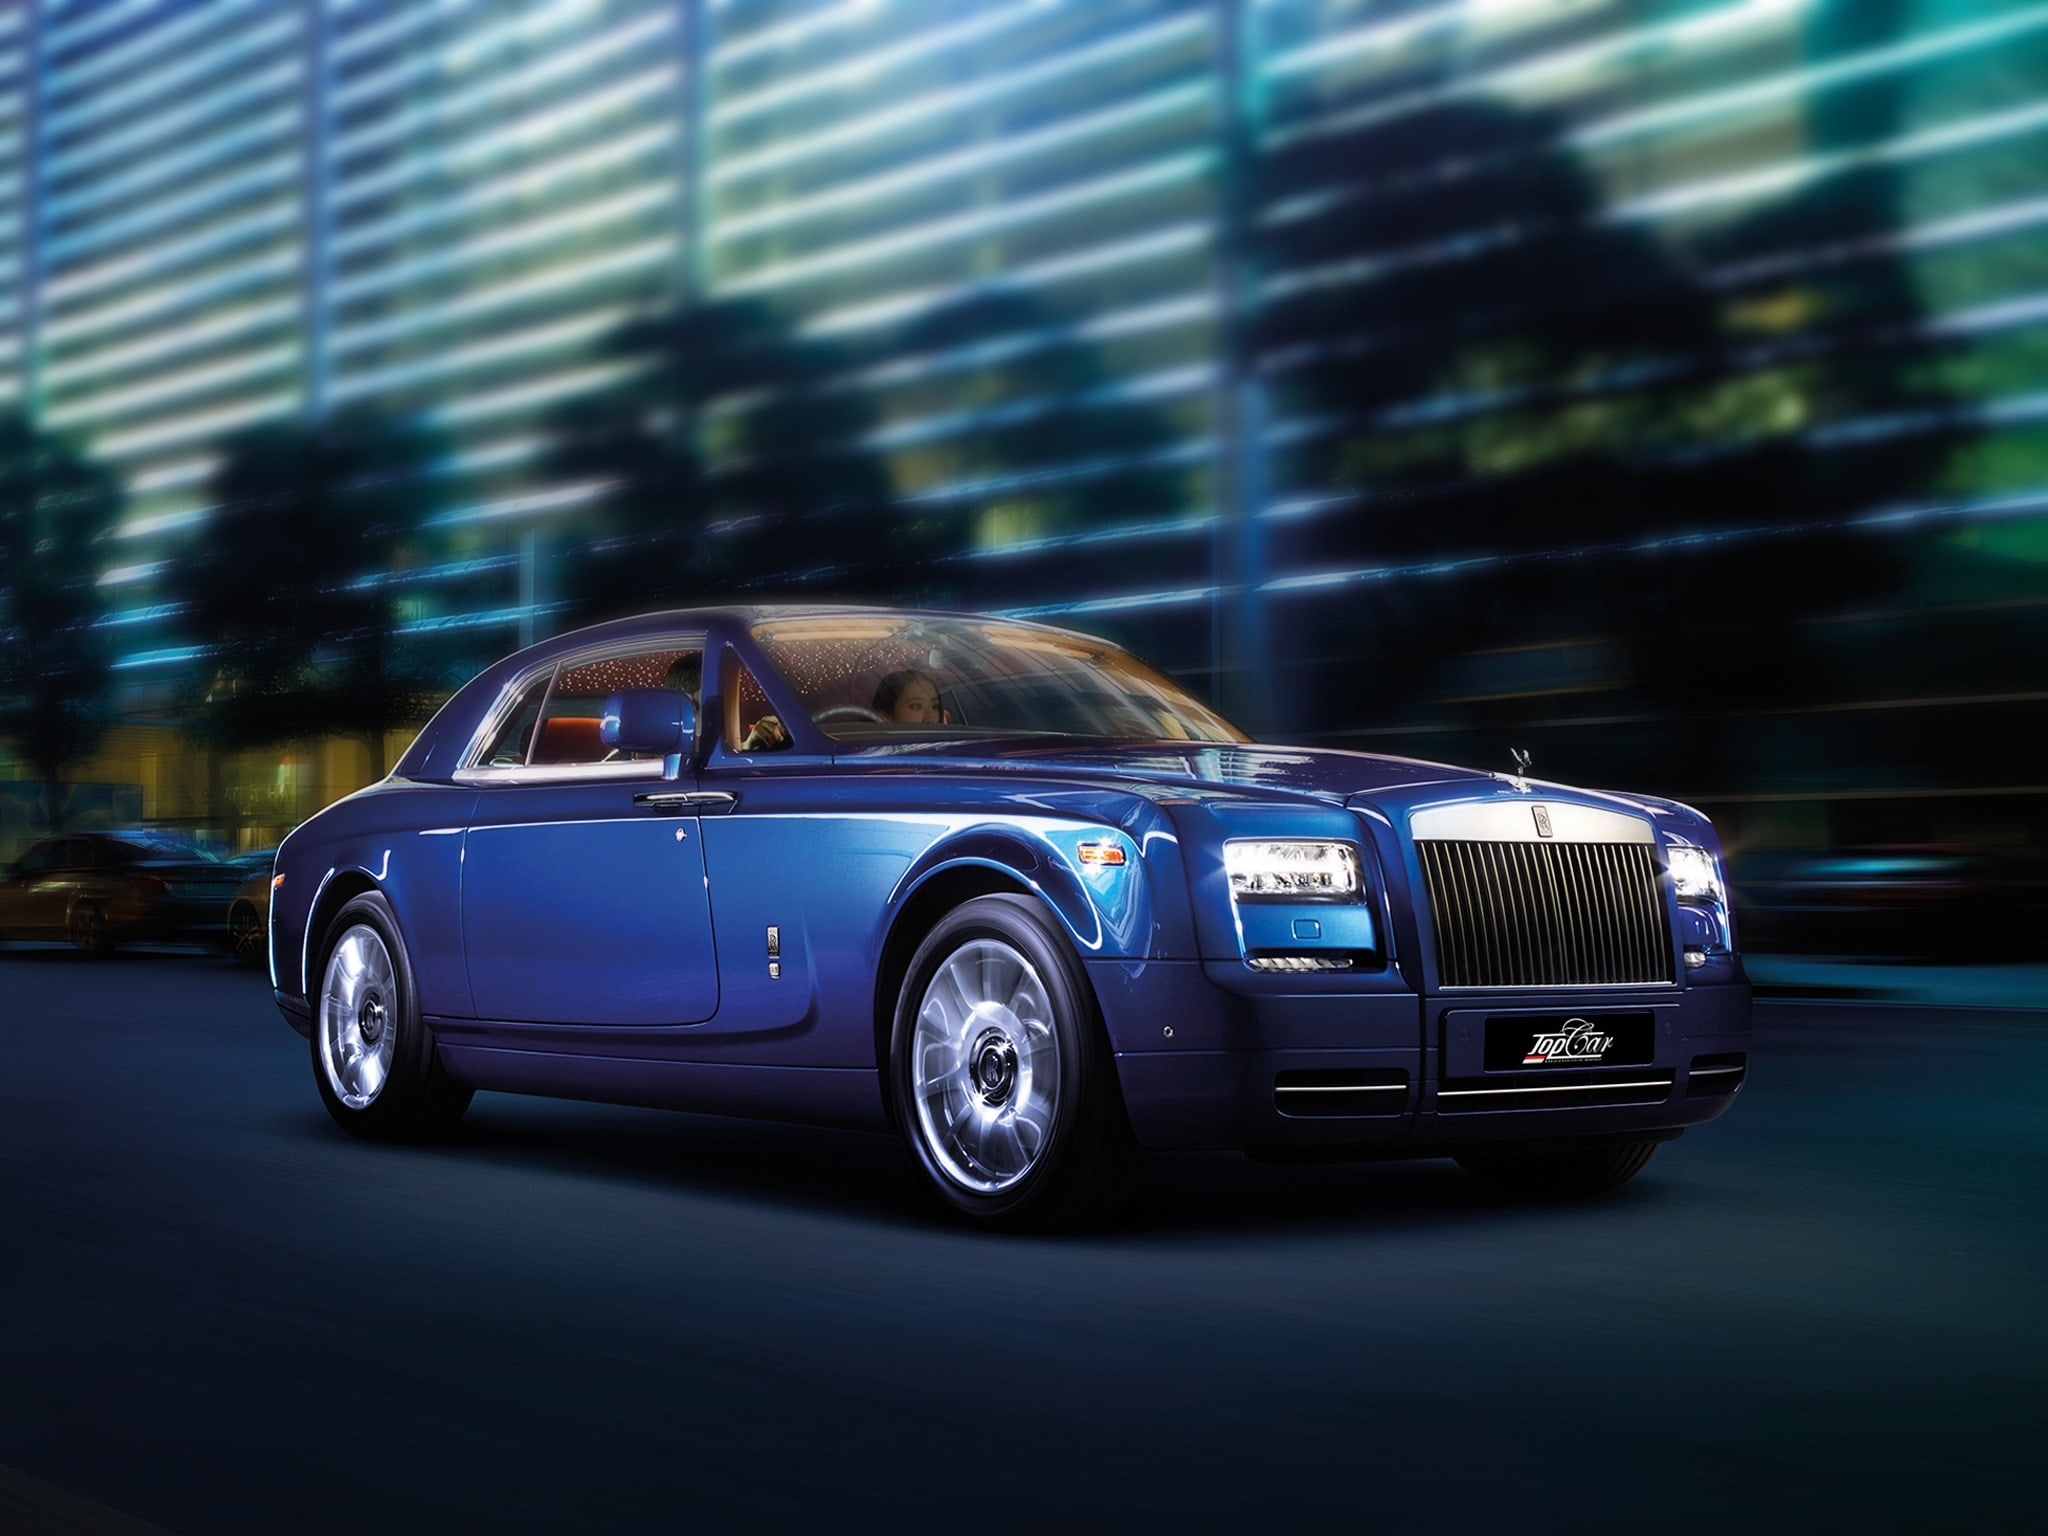 Rent Rolls Royce Phantom Monaco